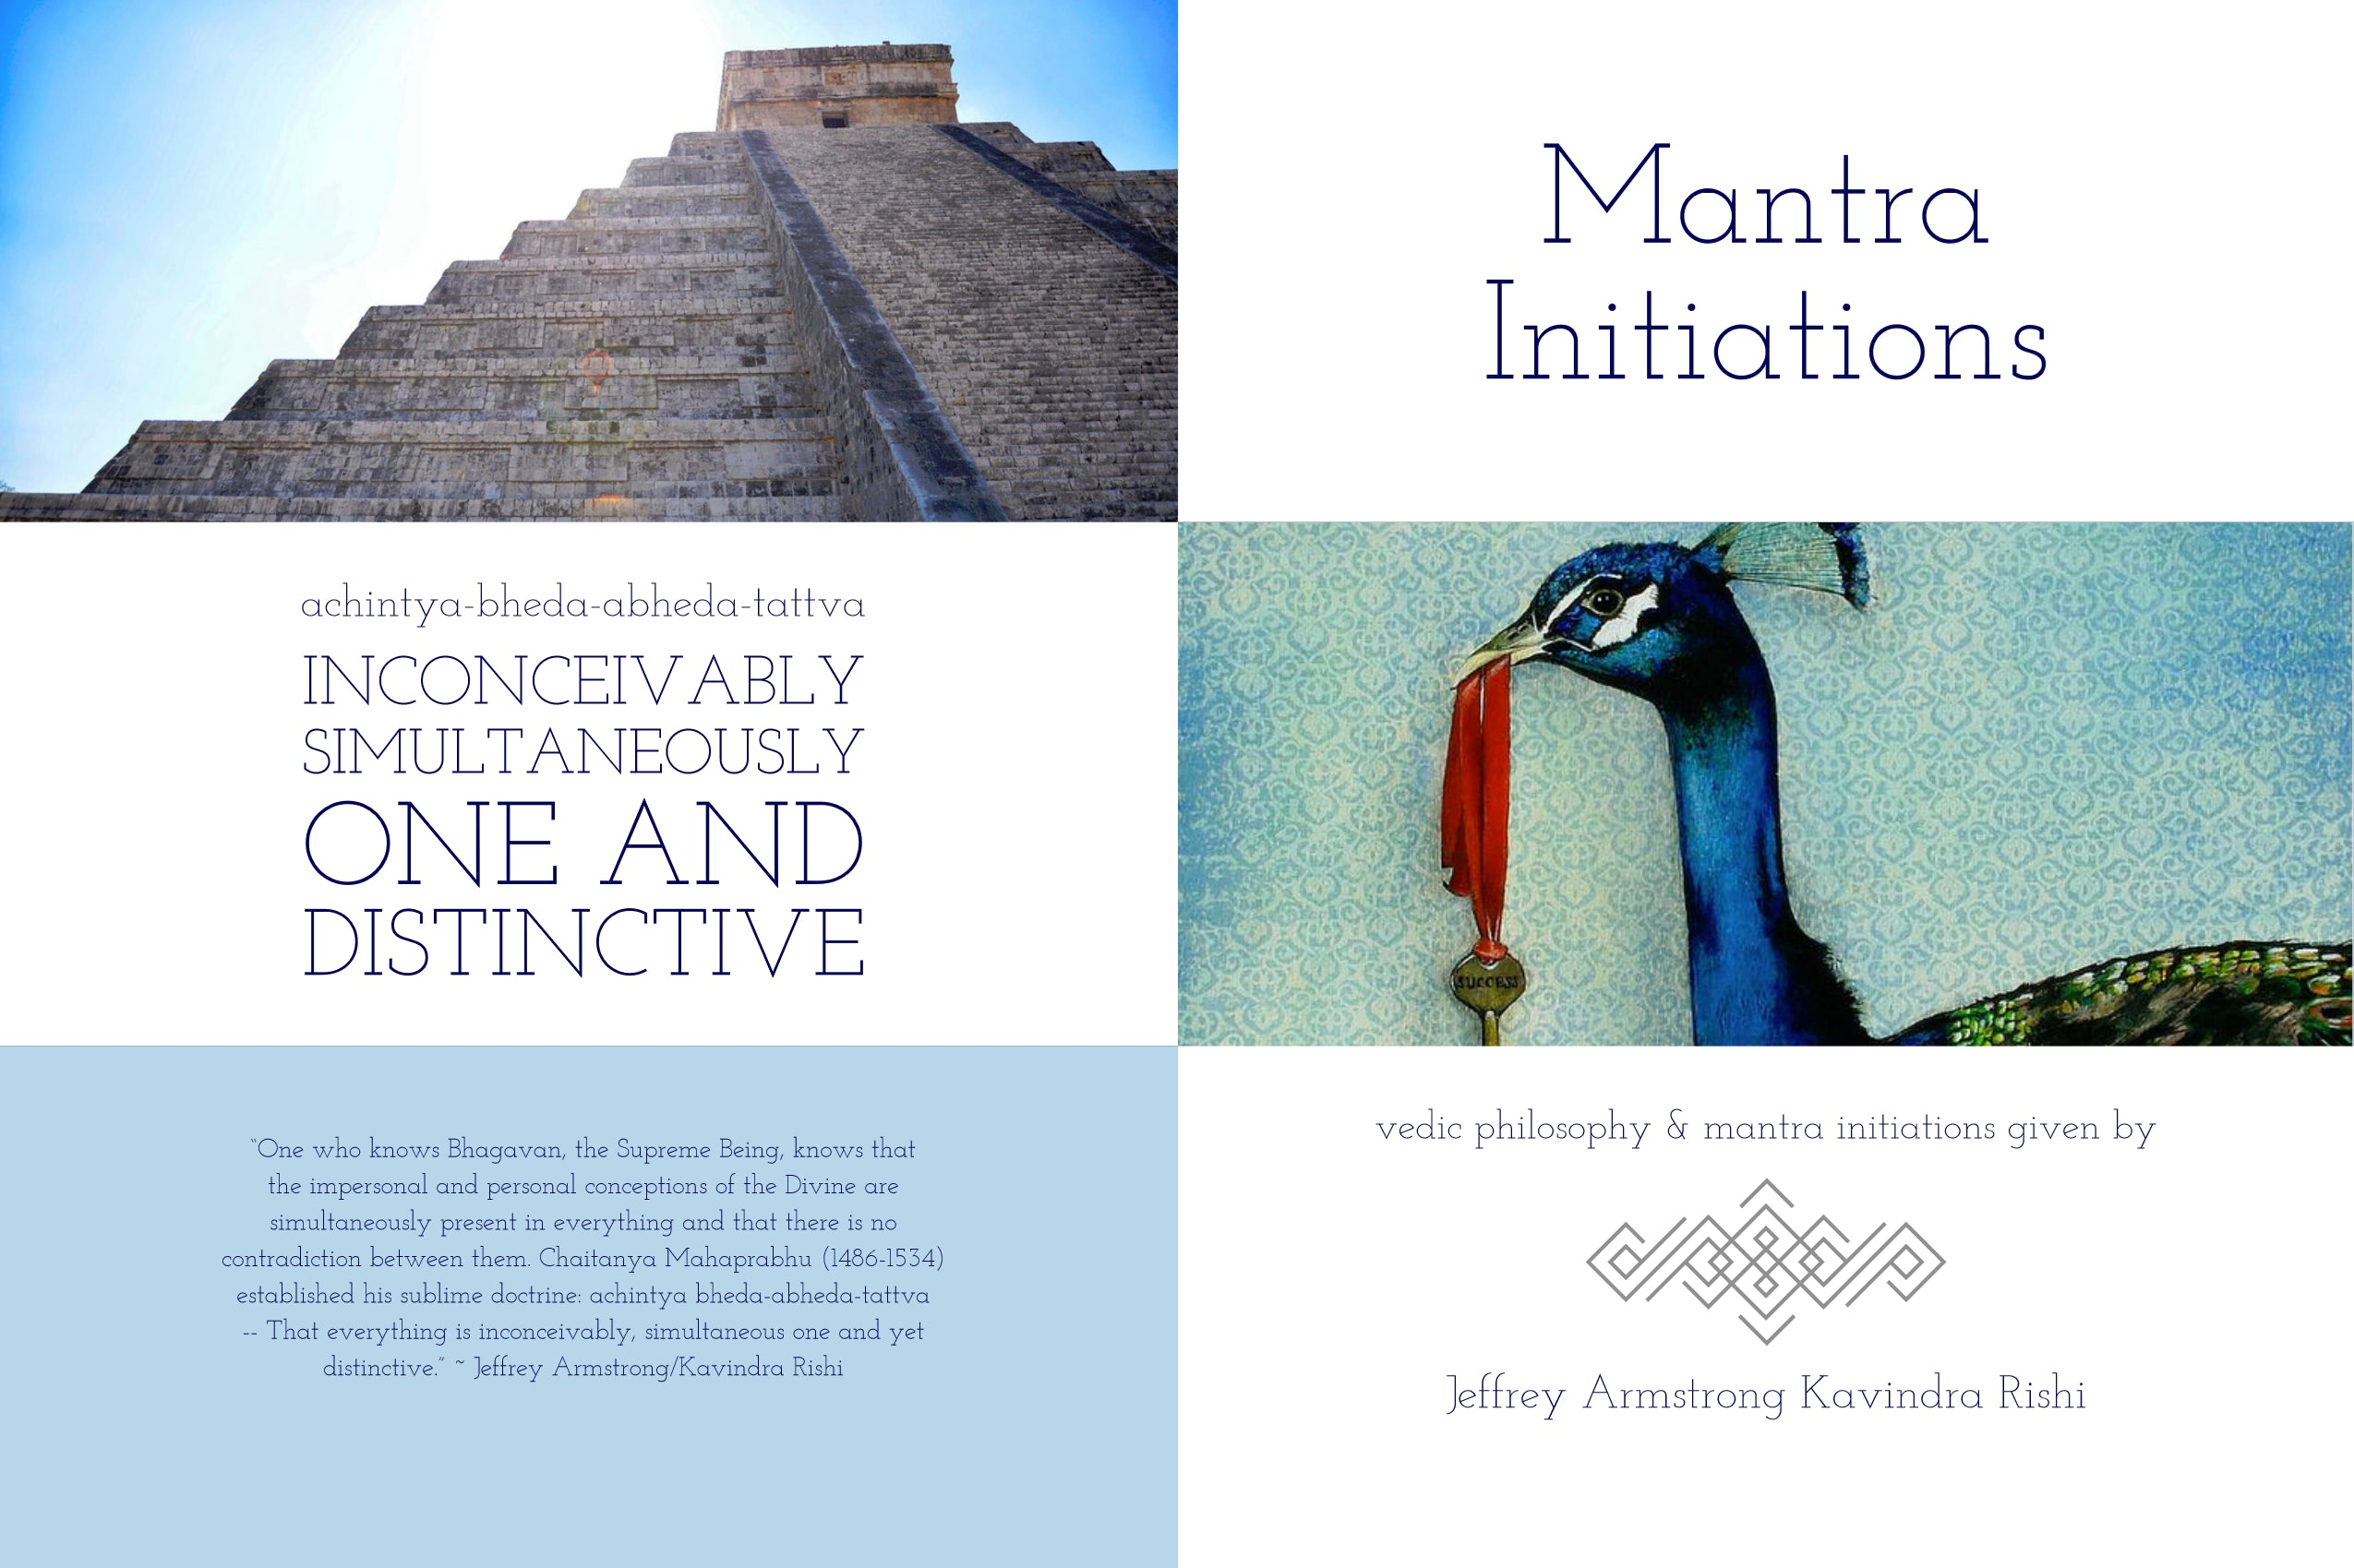 Mantra Initiations (booklet)